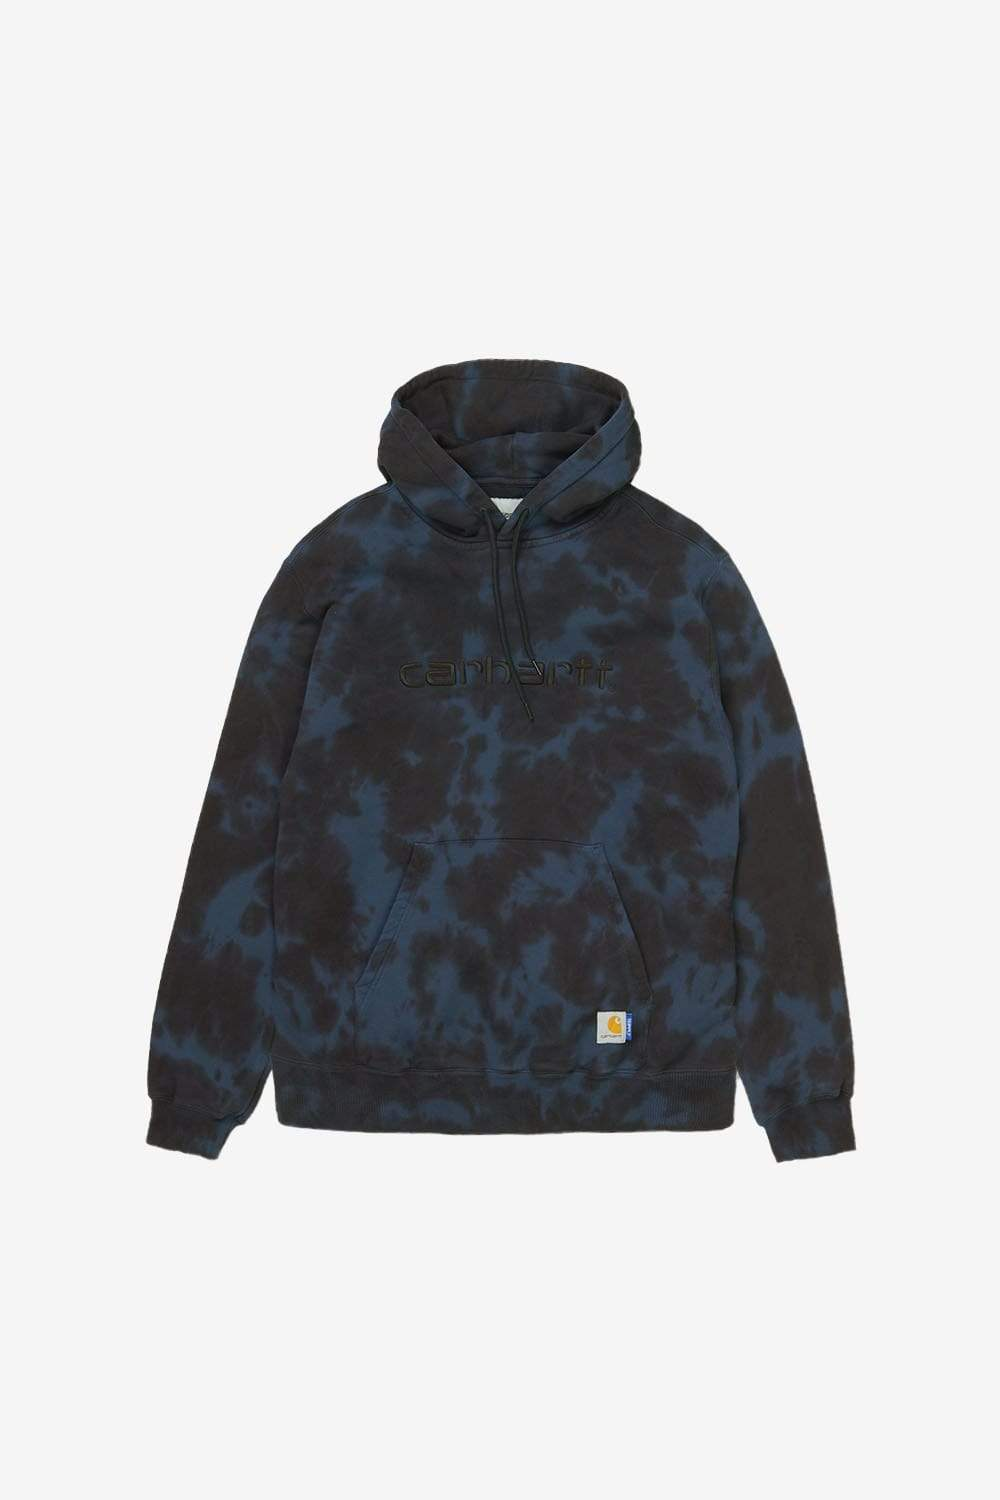 Carhartt WIP Apparel Supply Hooded Carhartt Sweat (Tie-Dyed)